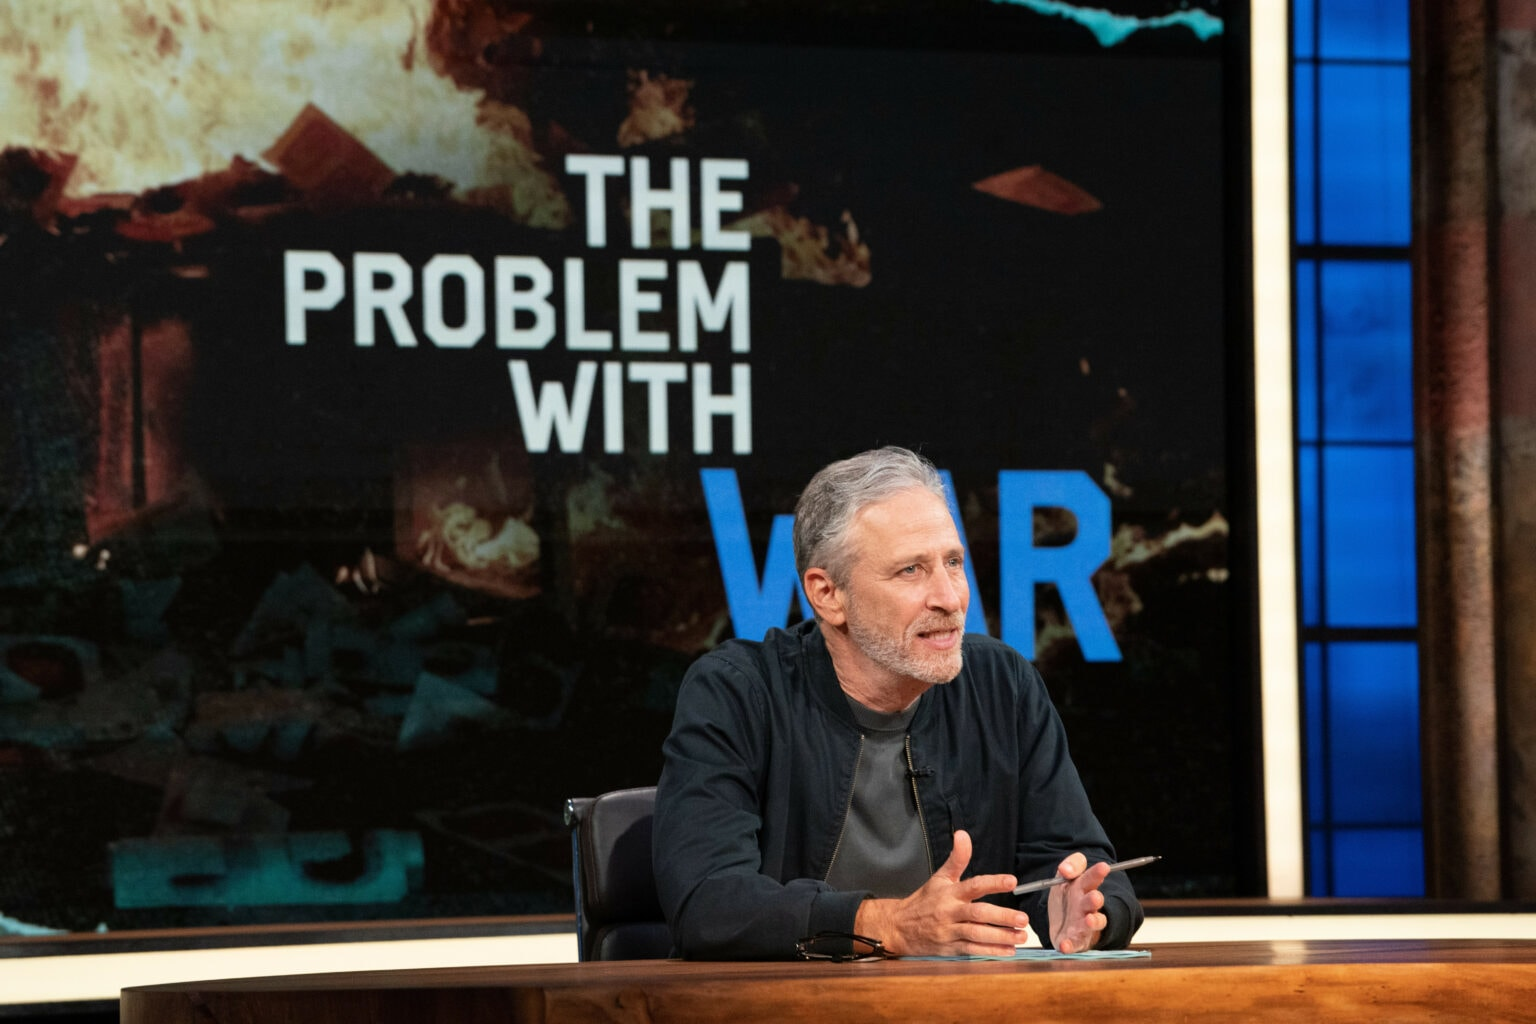 Jon Stewart is back in the anchor's chair on Apple TV+ show